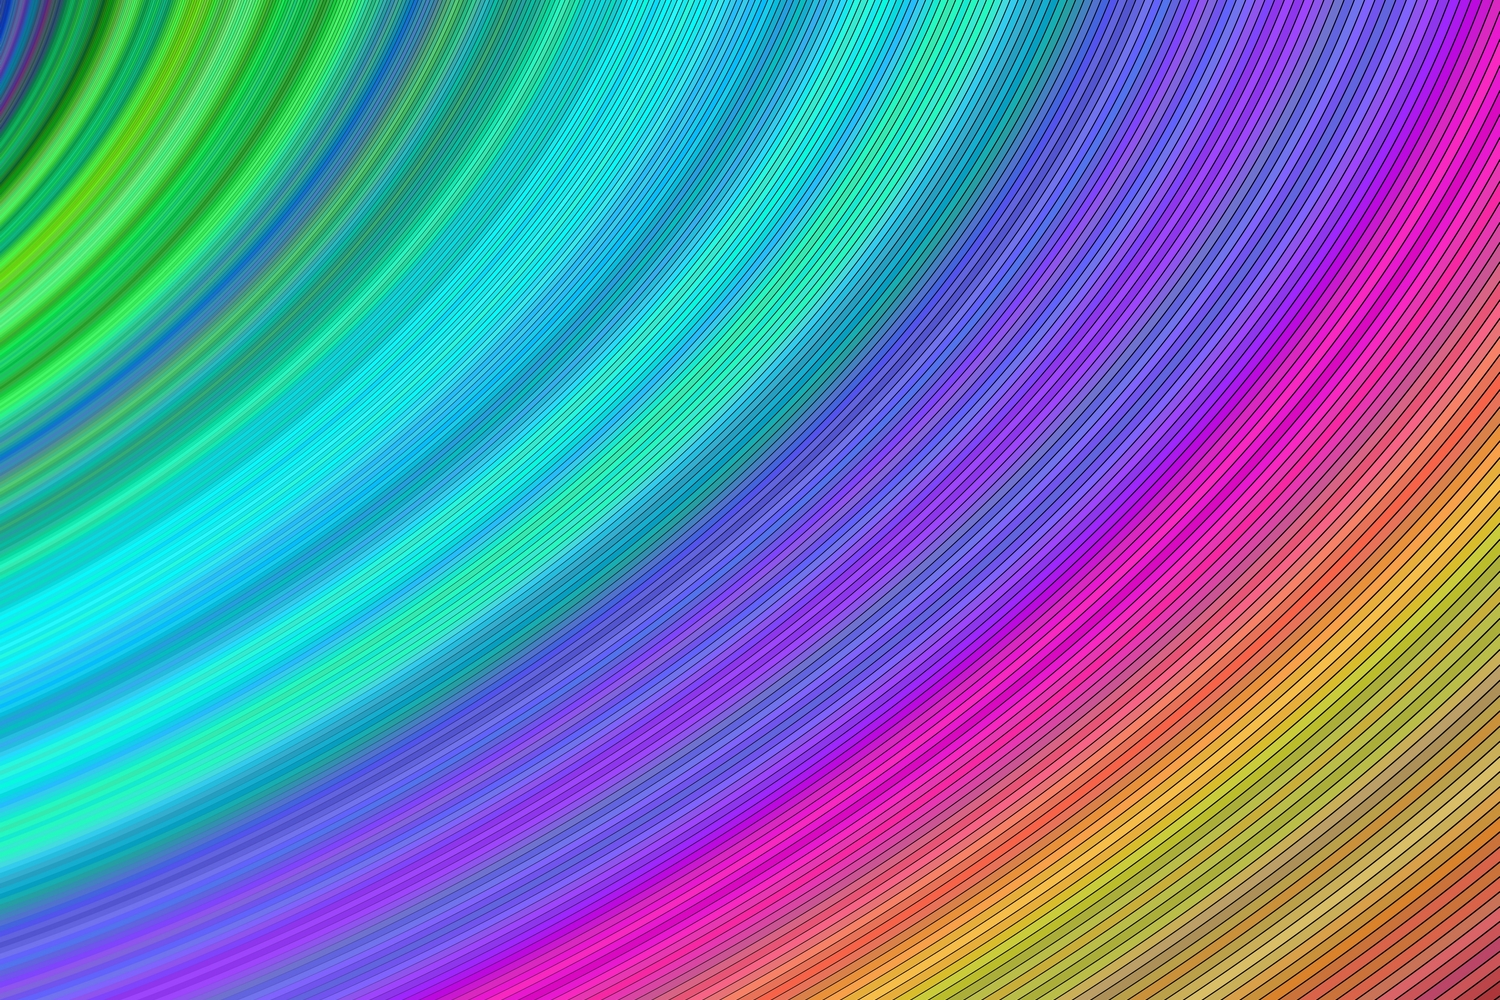 5 Colorful Backgrounds AI, EPS, JPG 5000x5000 example image 2